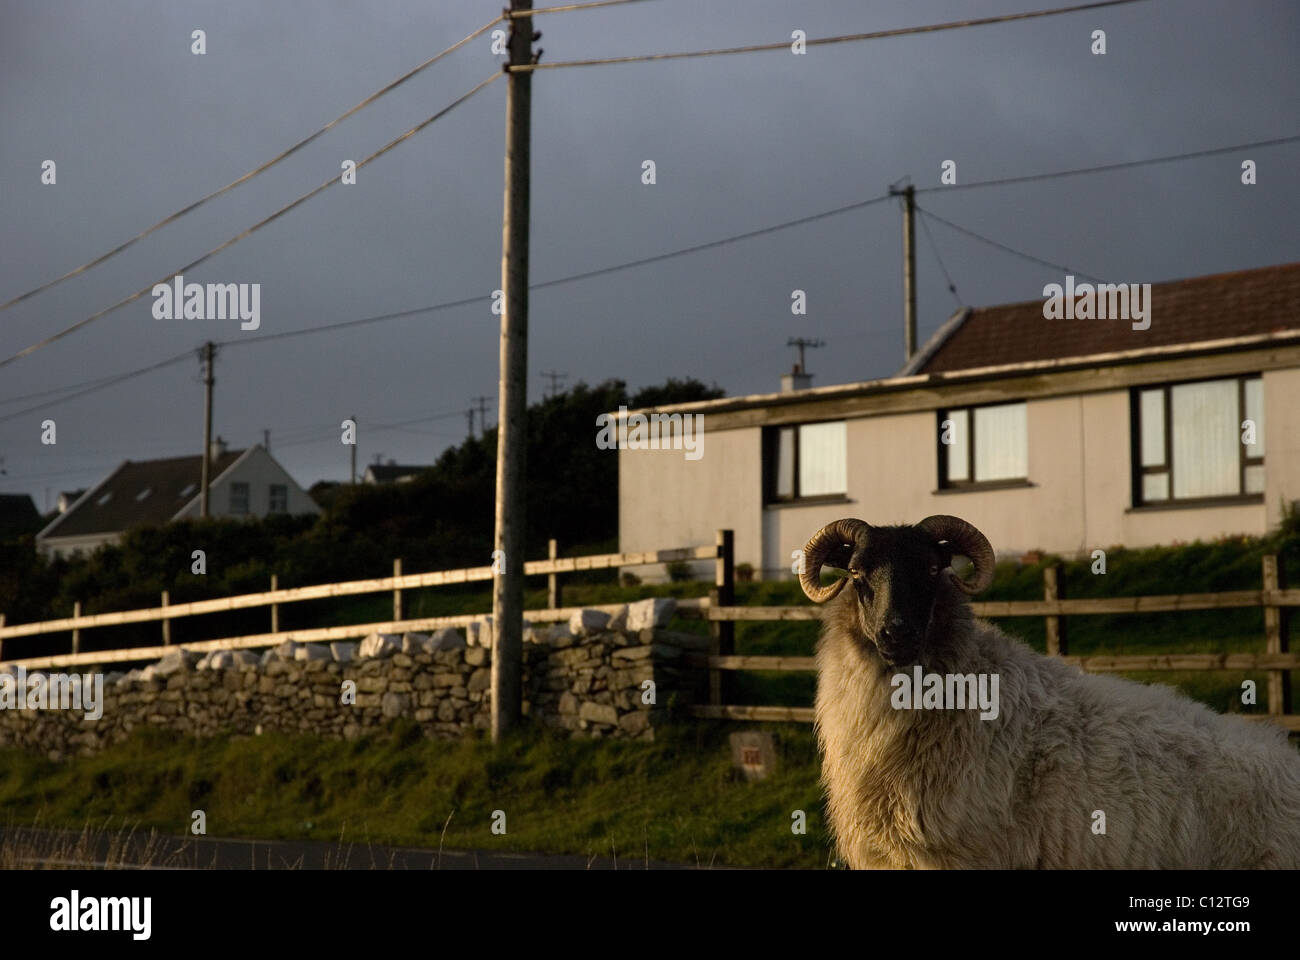 Sheep and house exterior in Achill Island, County Mayo, Ireland - Stock Image